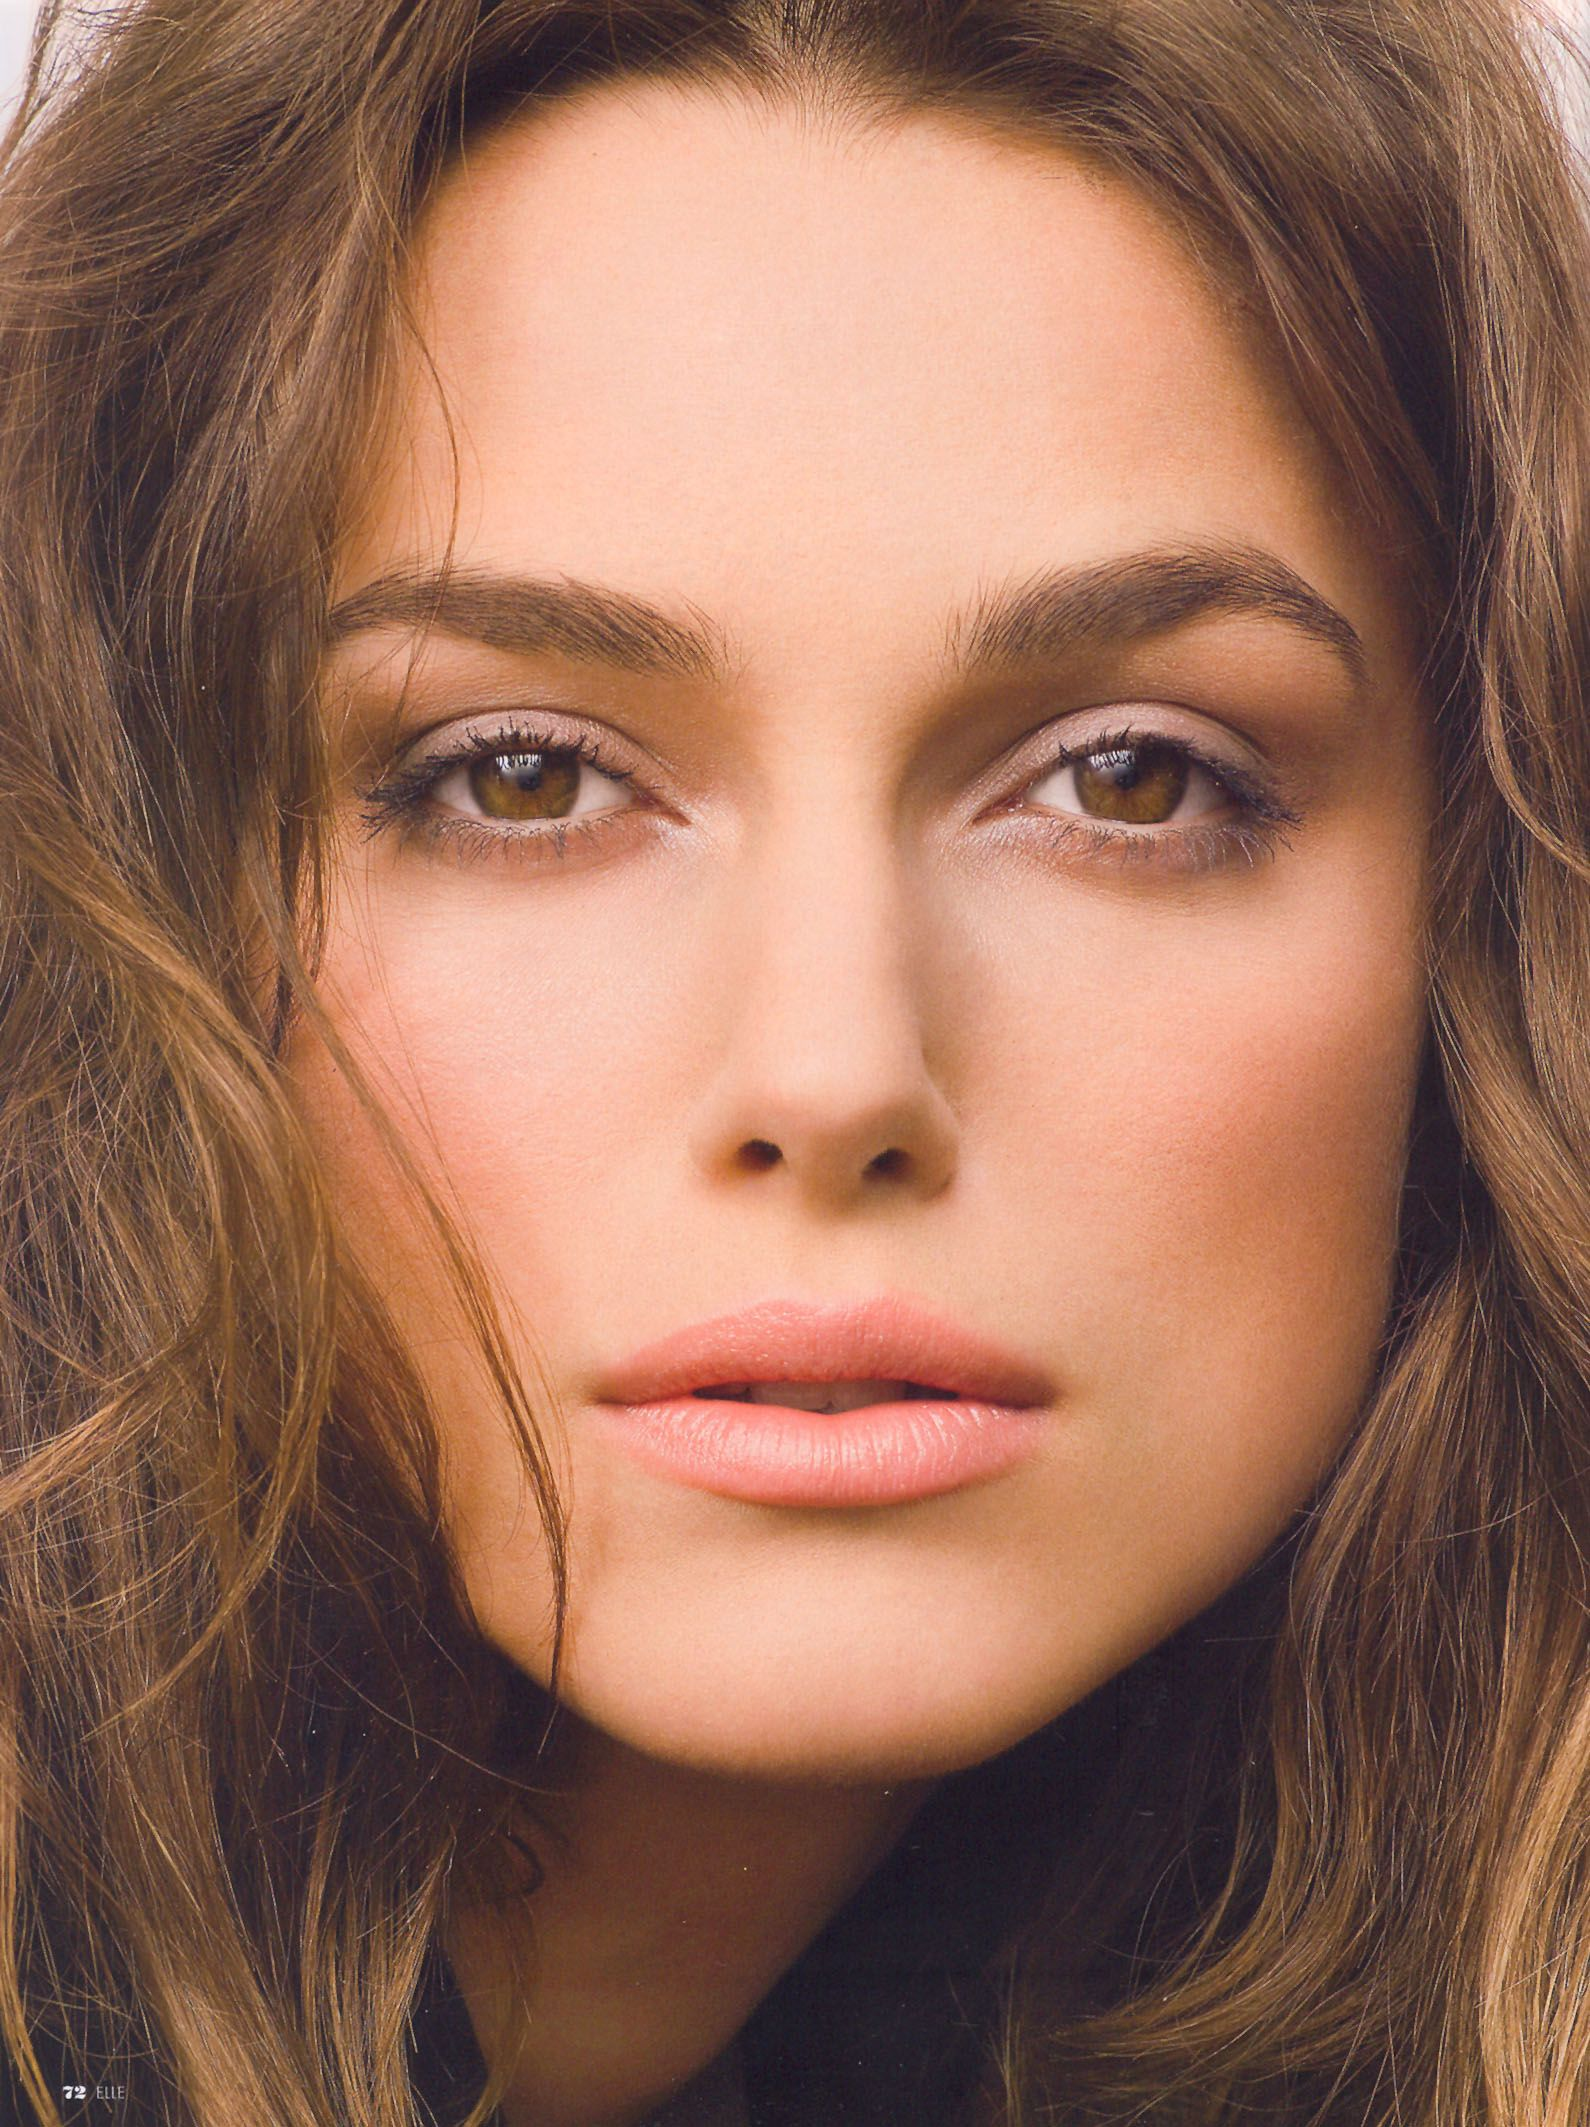 Keira knightley with images keira knightley keira